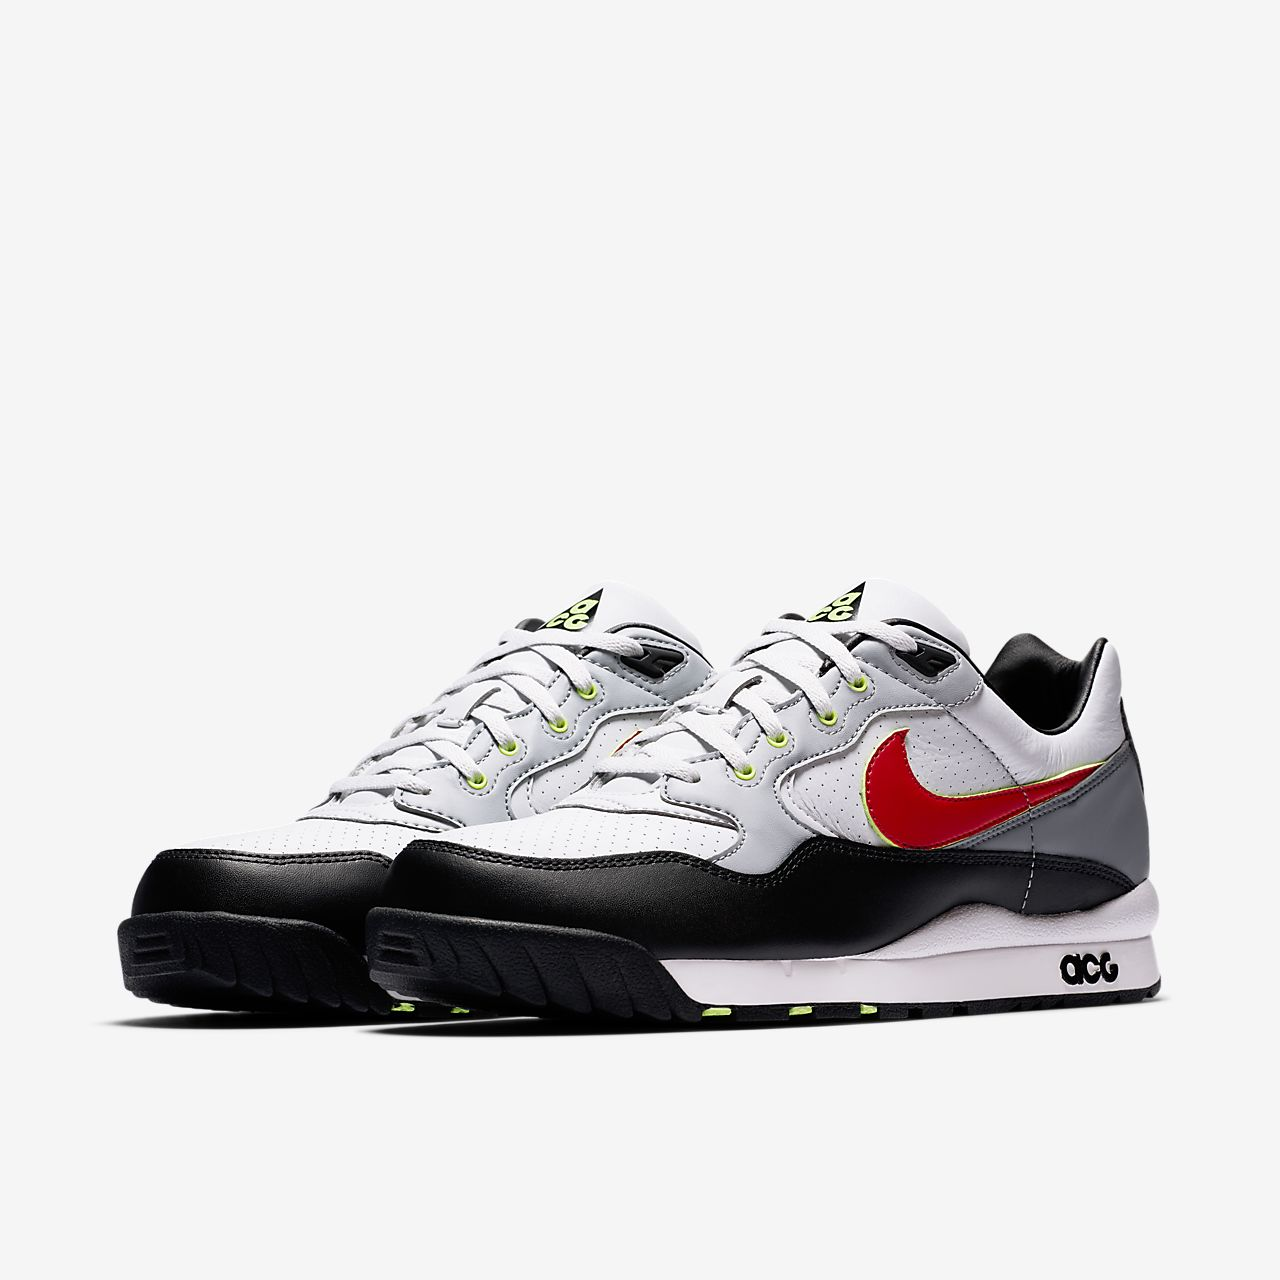 promo code ee380 edc18 ... Chaussure Nike Air Wildwood ACG pour Homme